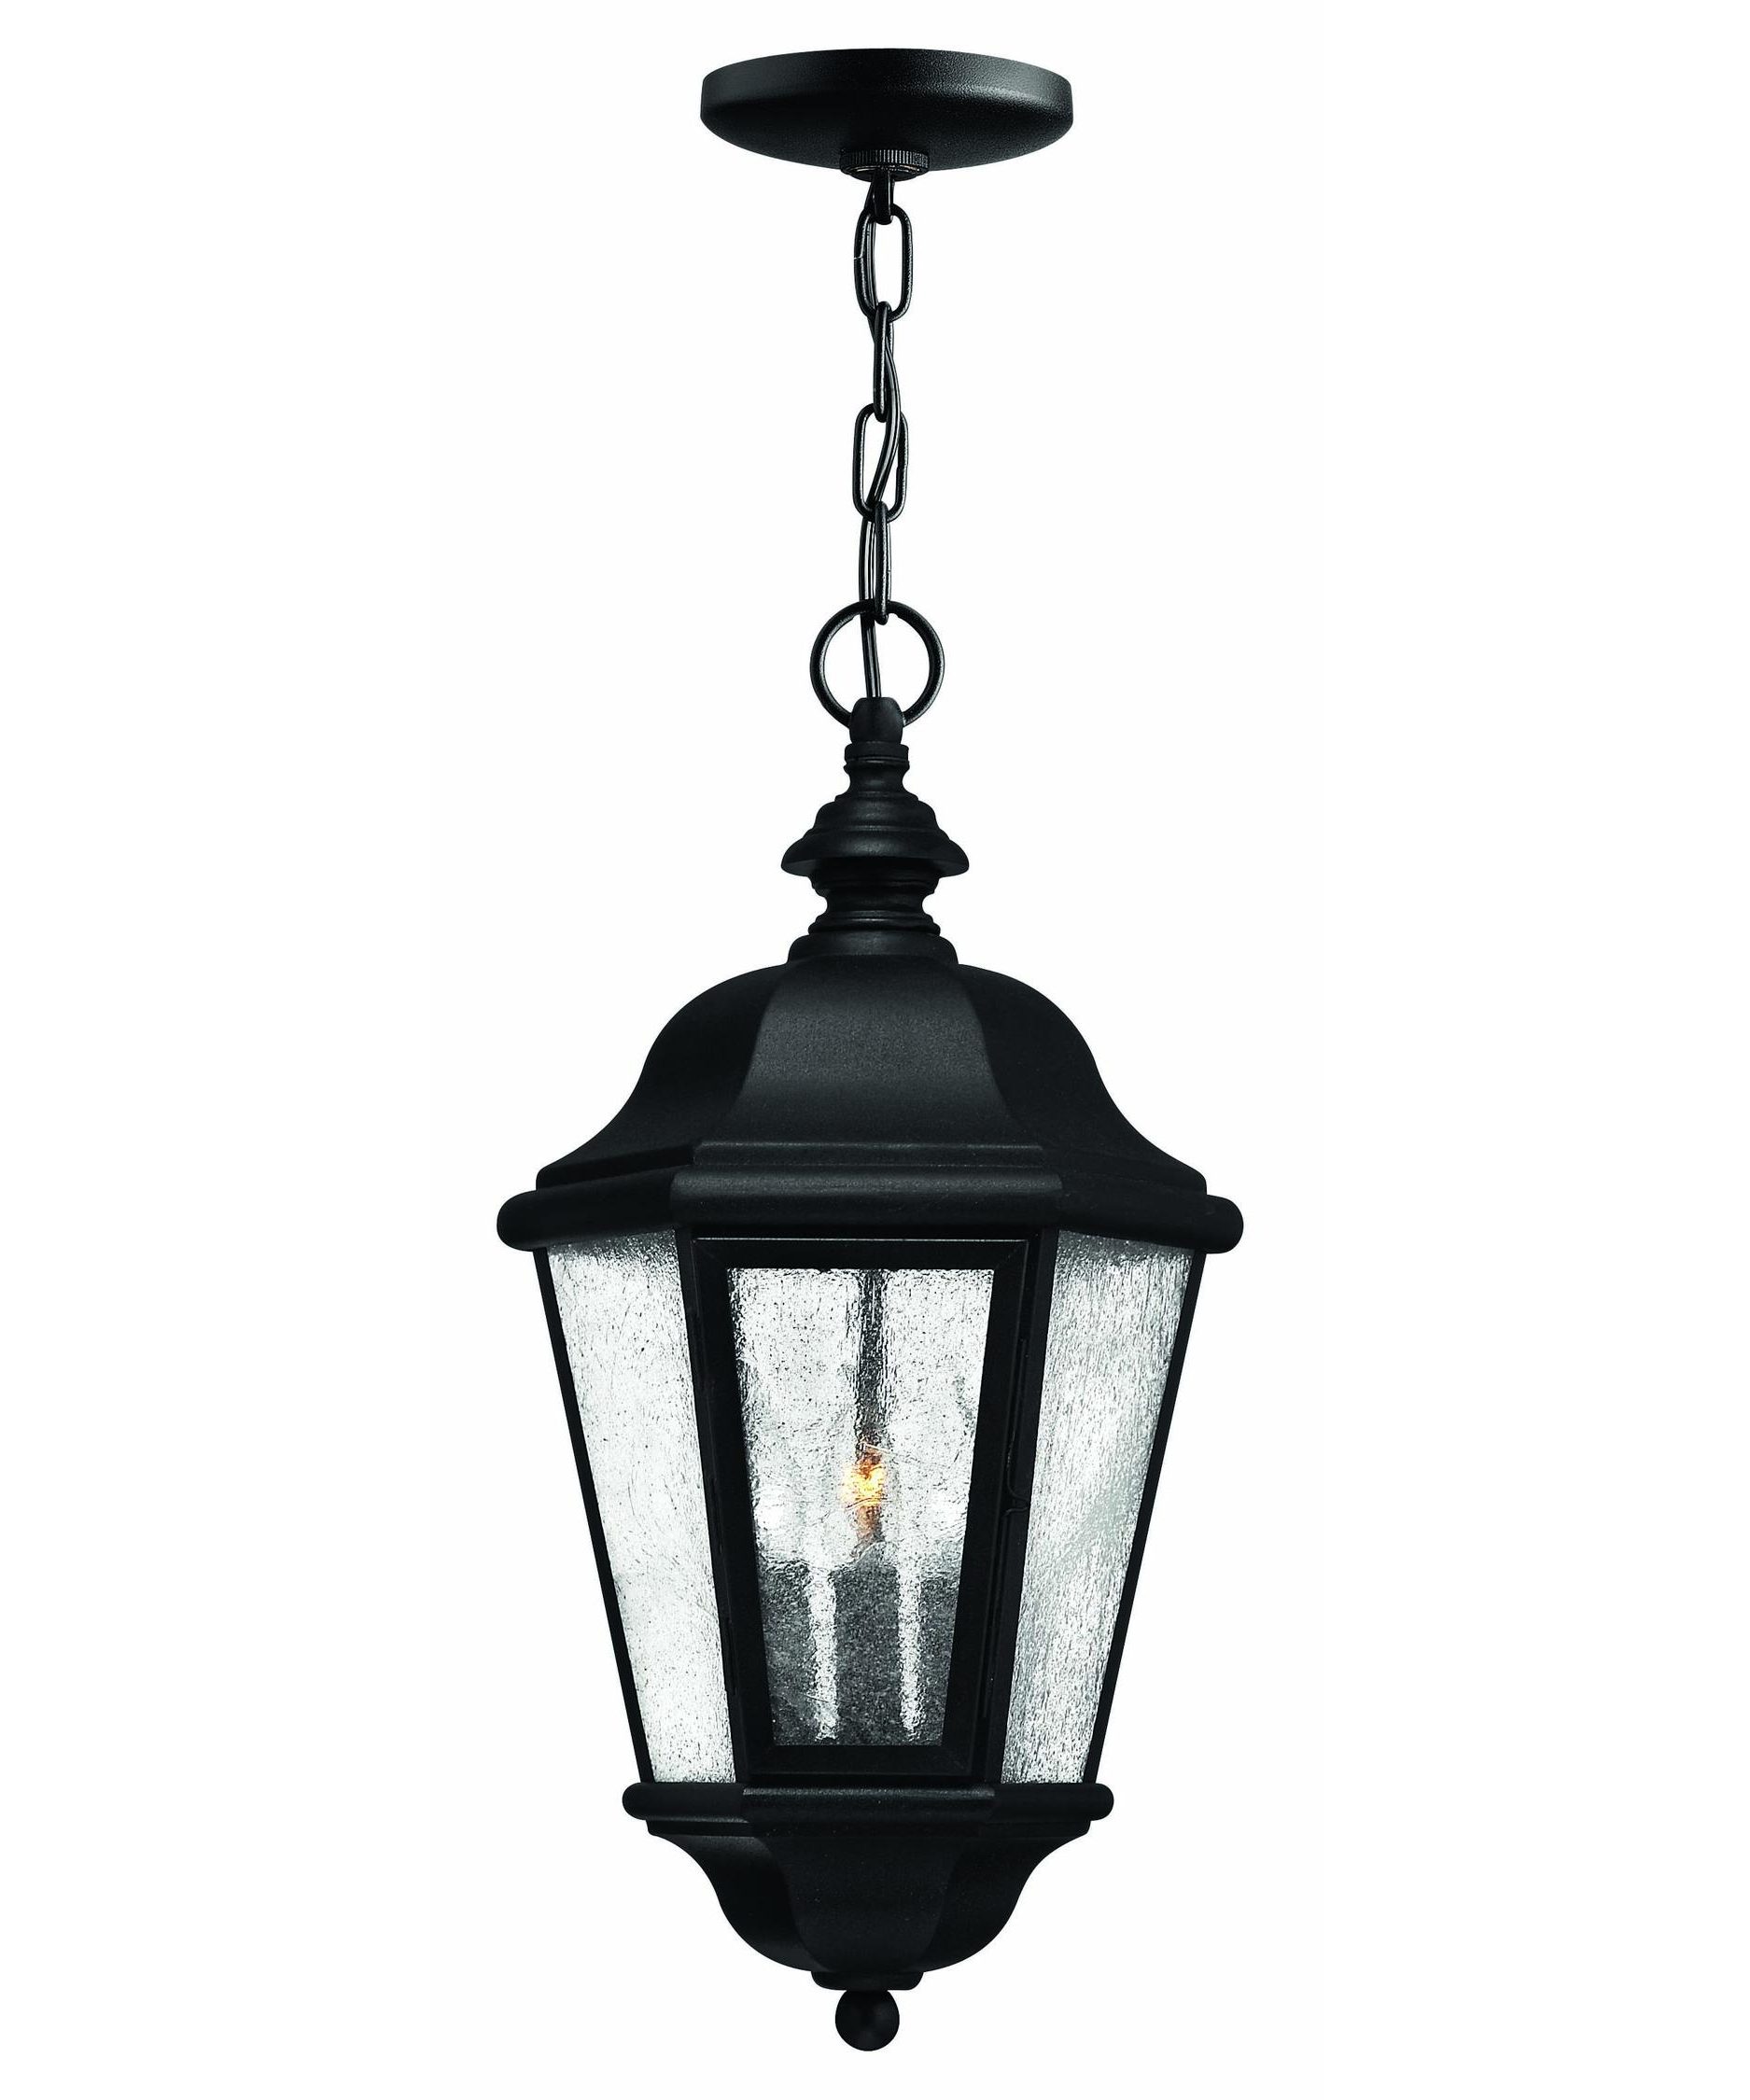 Hinkley Lighting 1672 Edgewater 10 Inch Wide 3 Light Outdoor Hanging Throughout Current Outdoor Lighting Pendant Fixtures (Gallery 2 of 20)